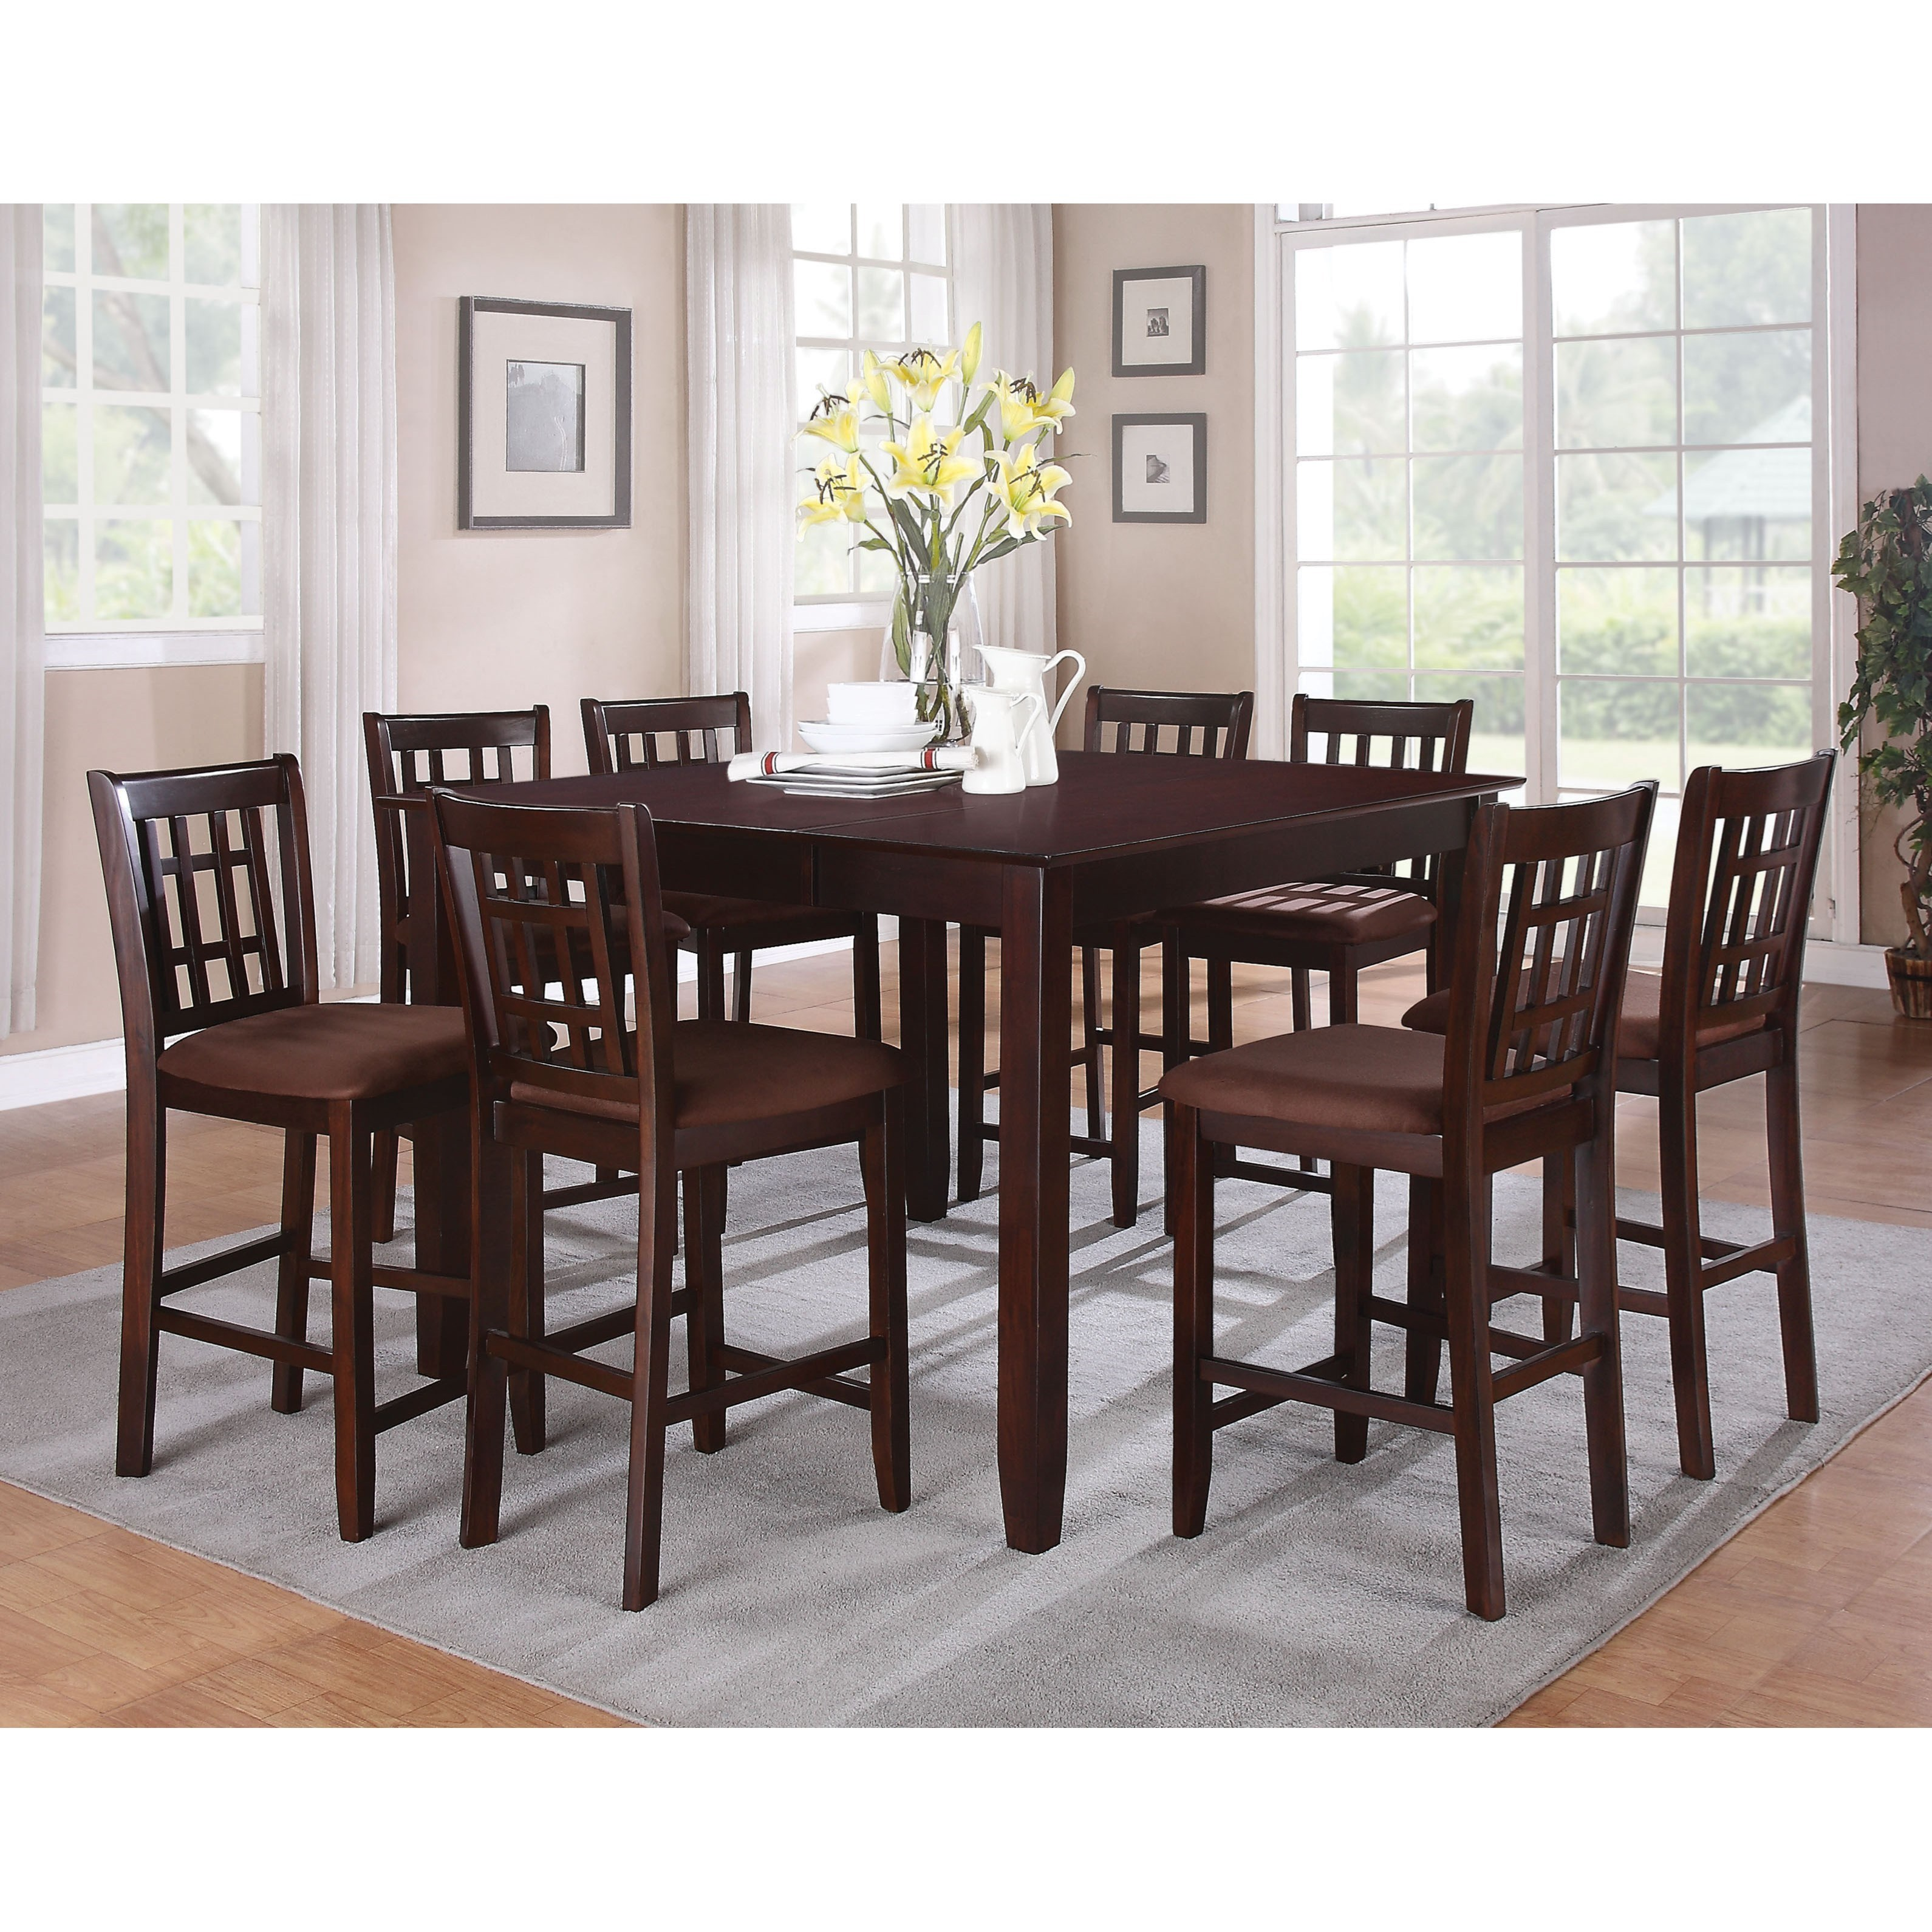 Counter Height Dining Set with 8 Chairs